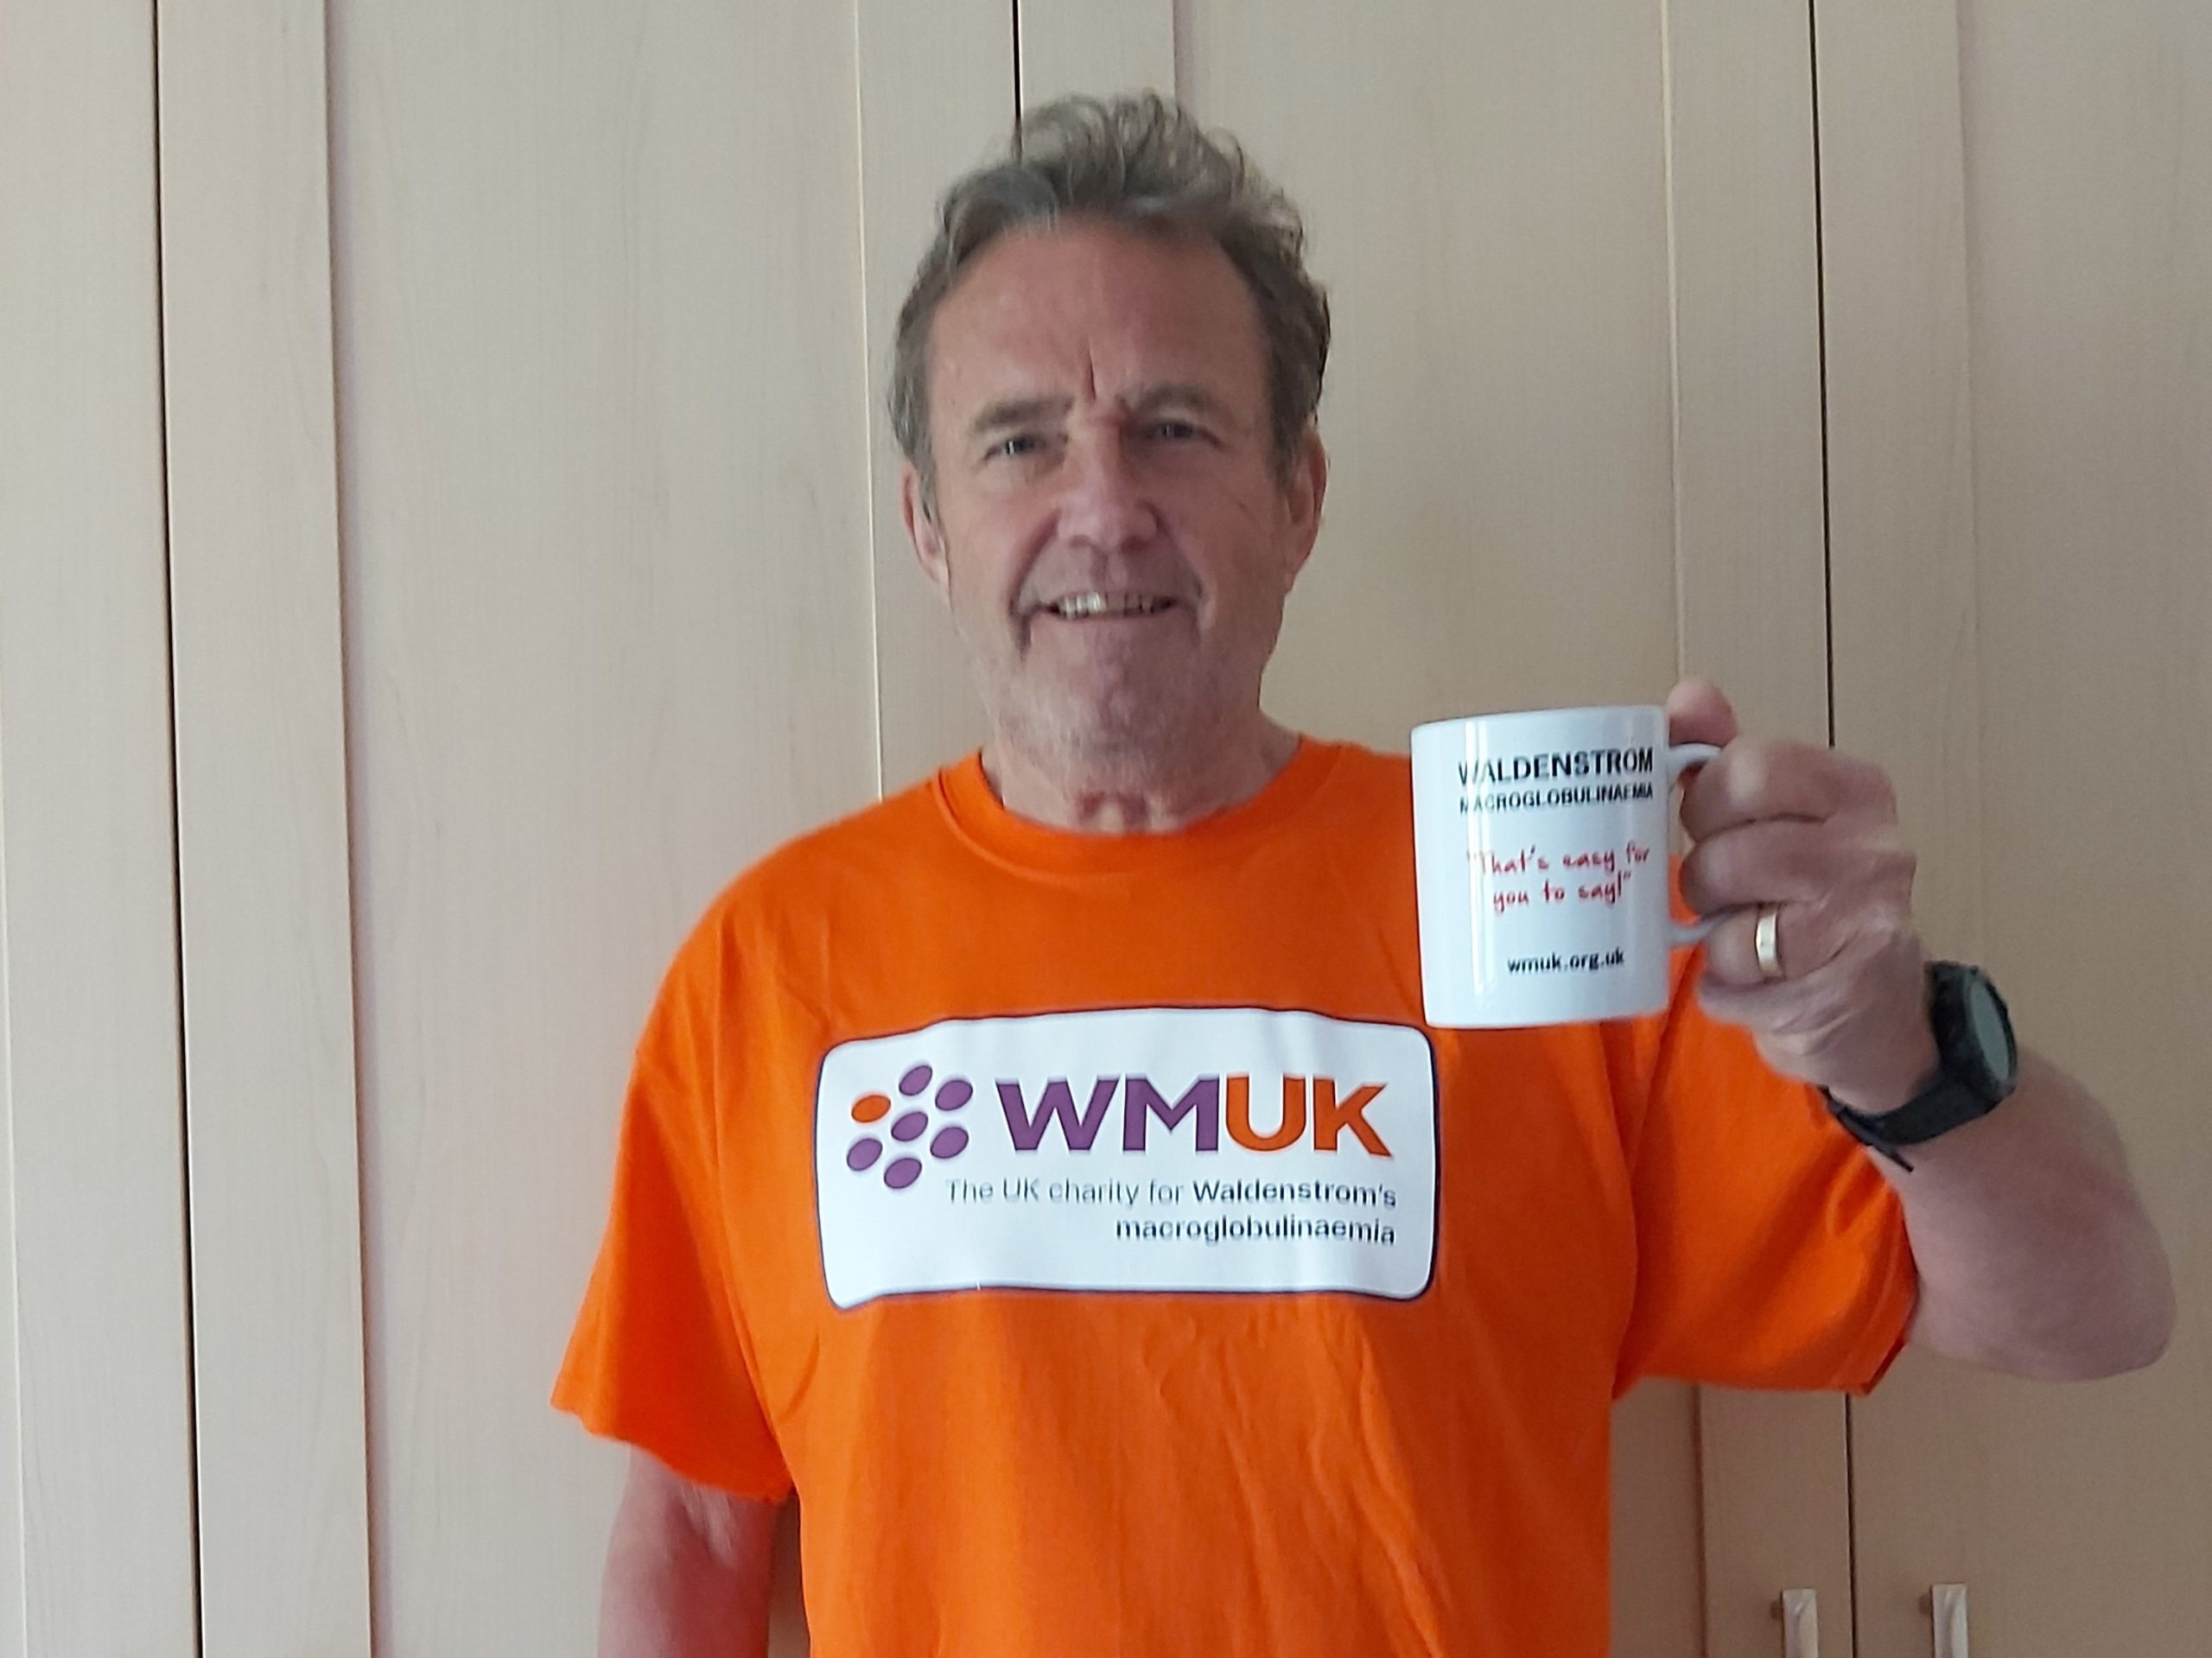 Bob Perry in WMUK T-shirt